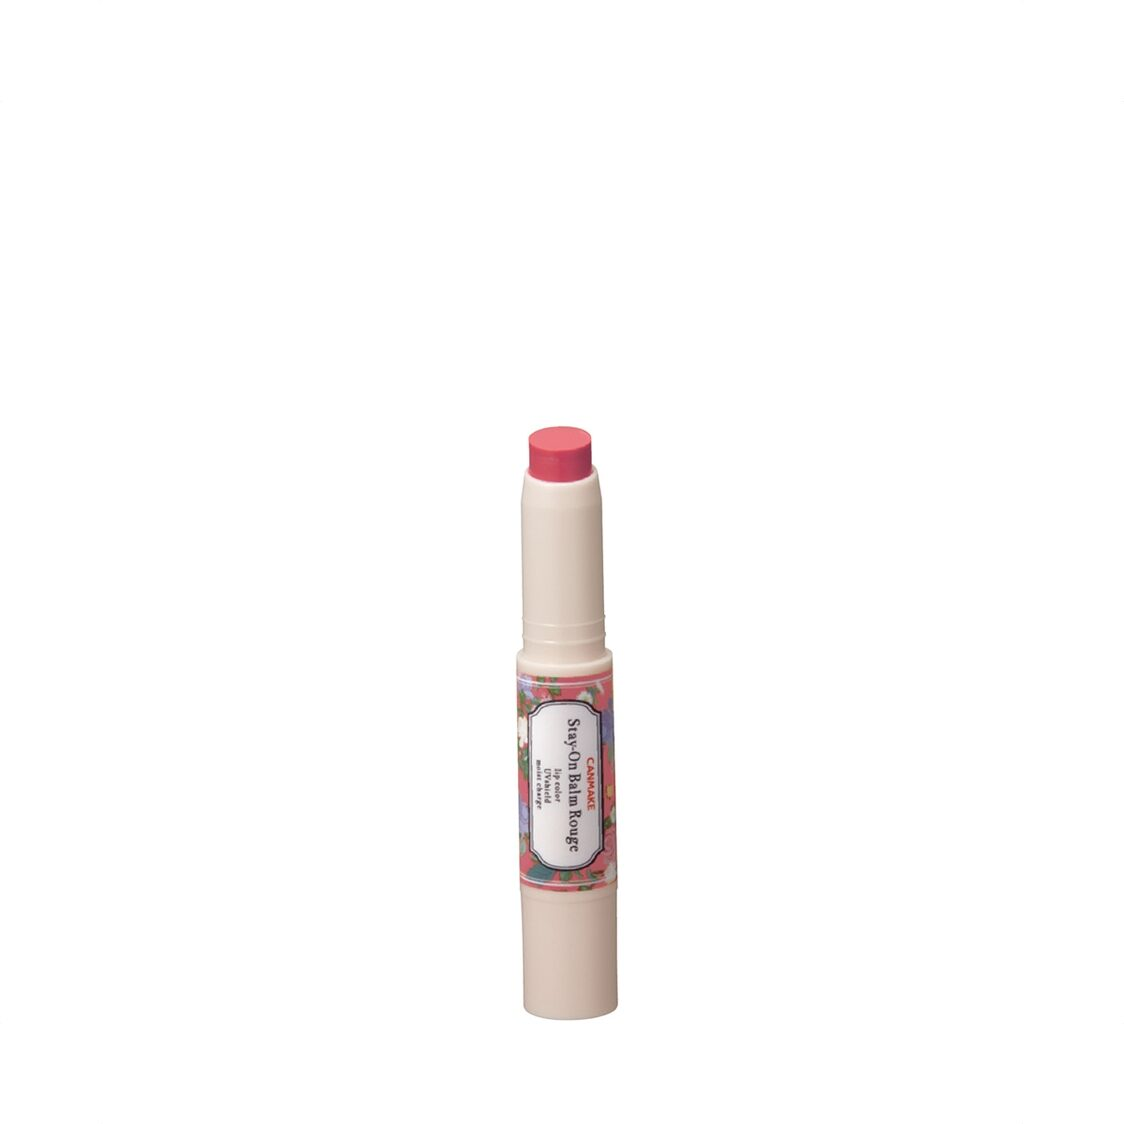 Stay On Balm Rouge